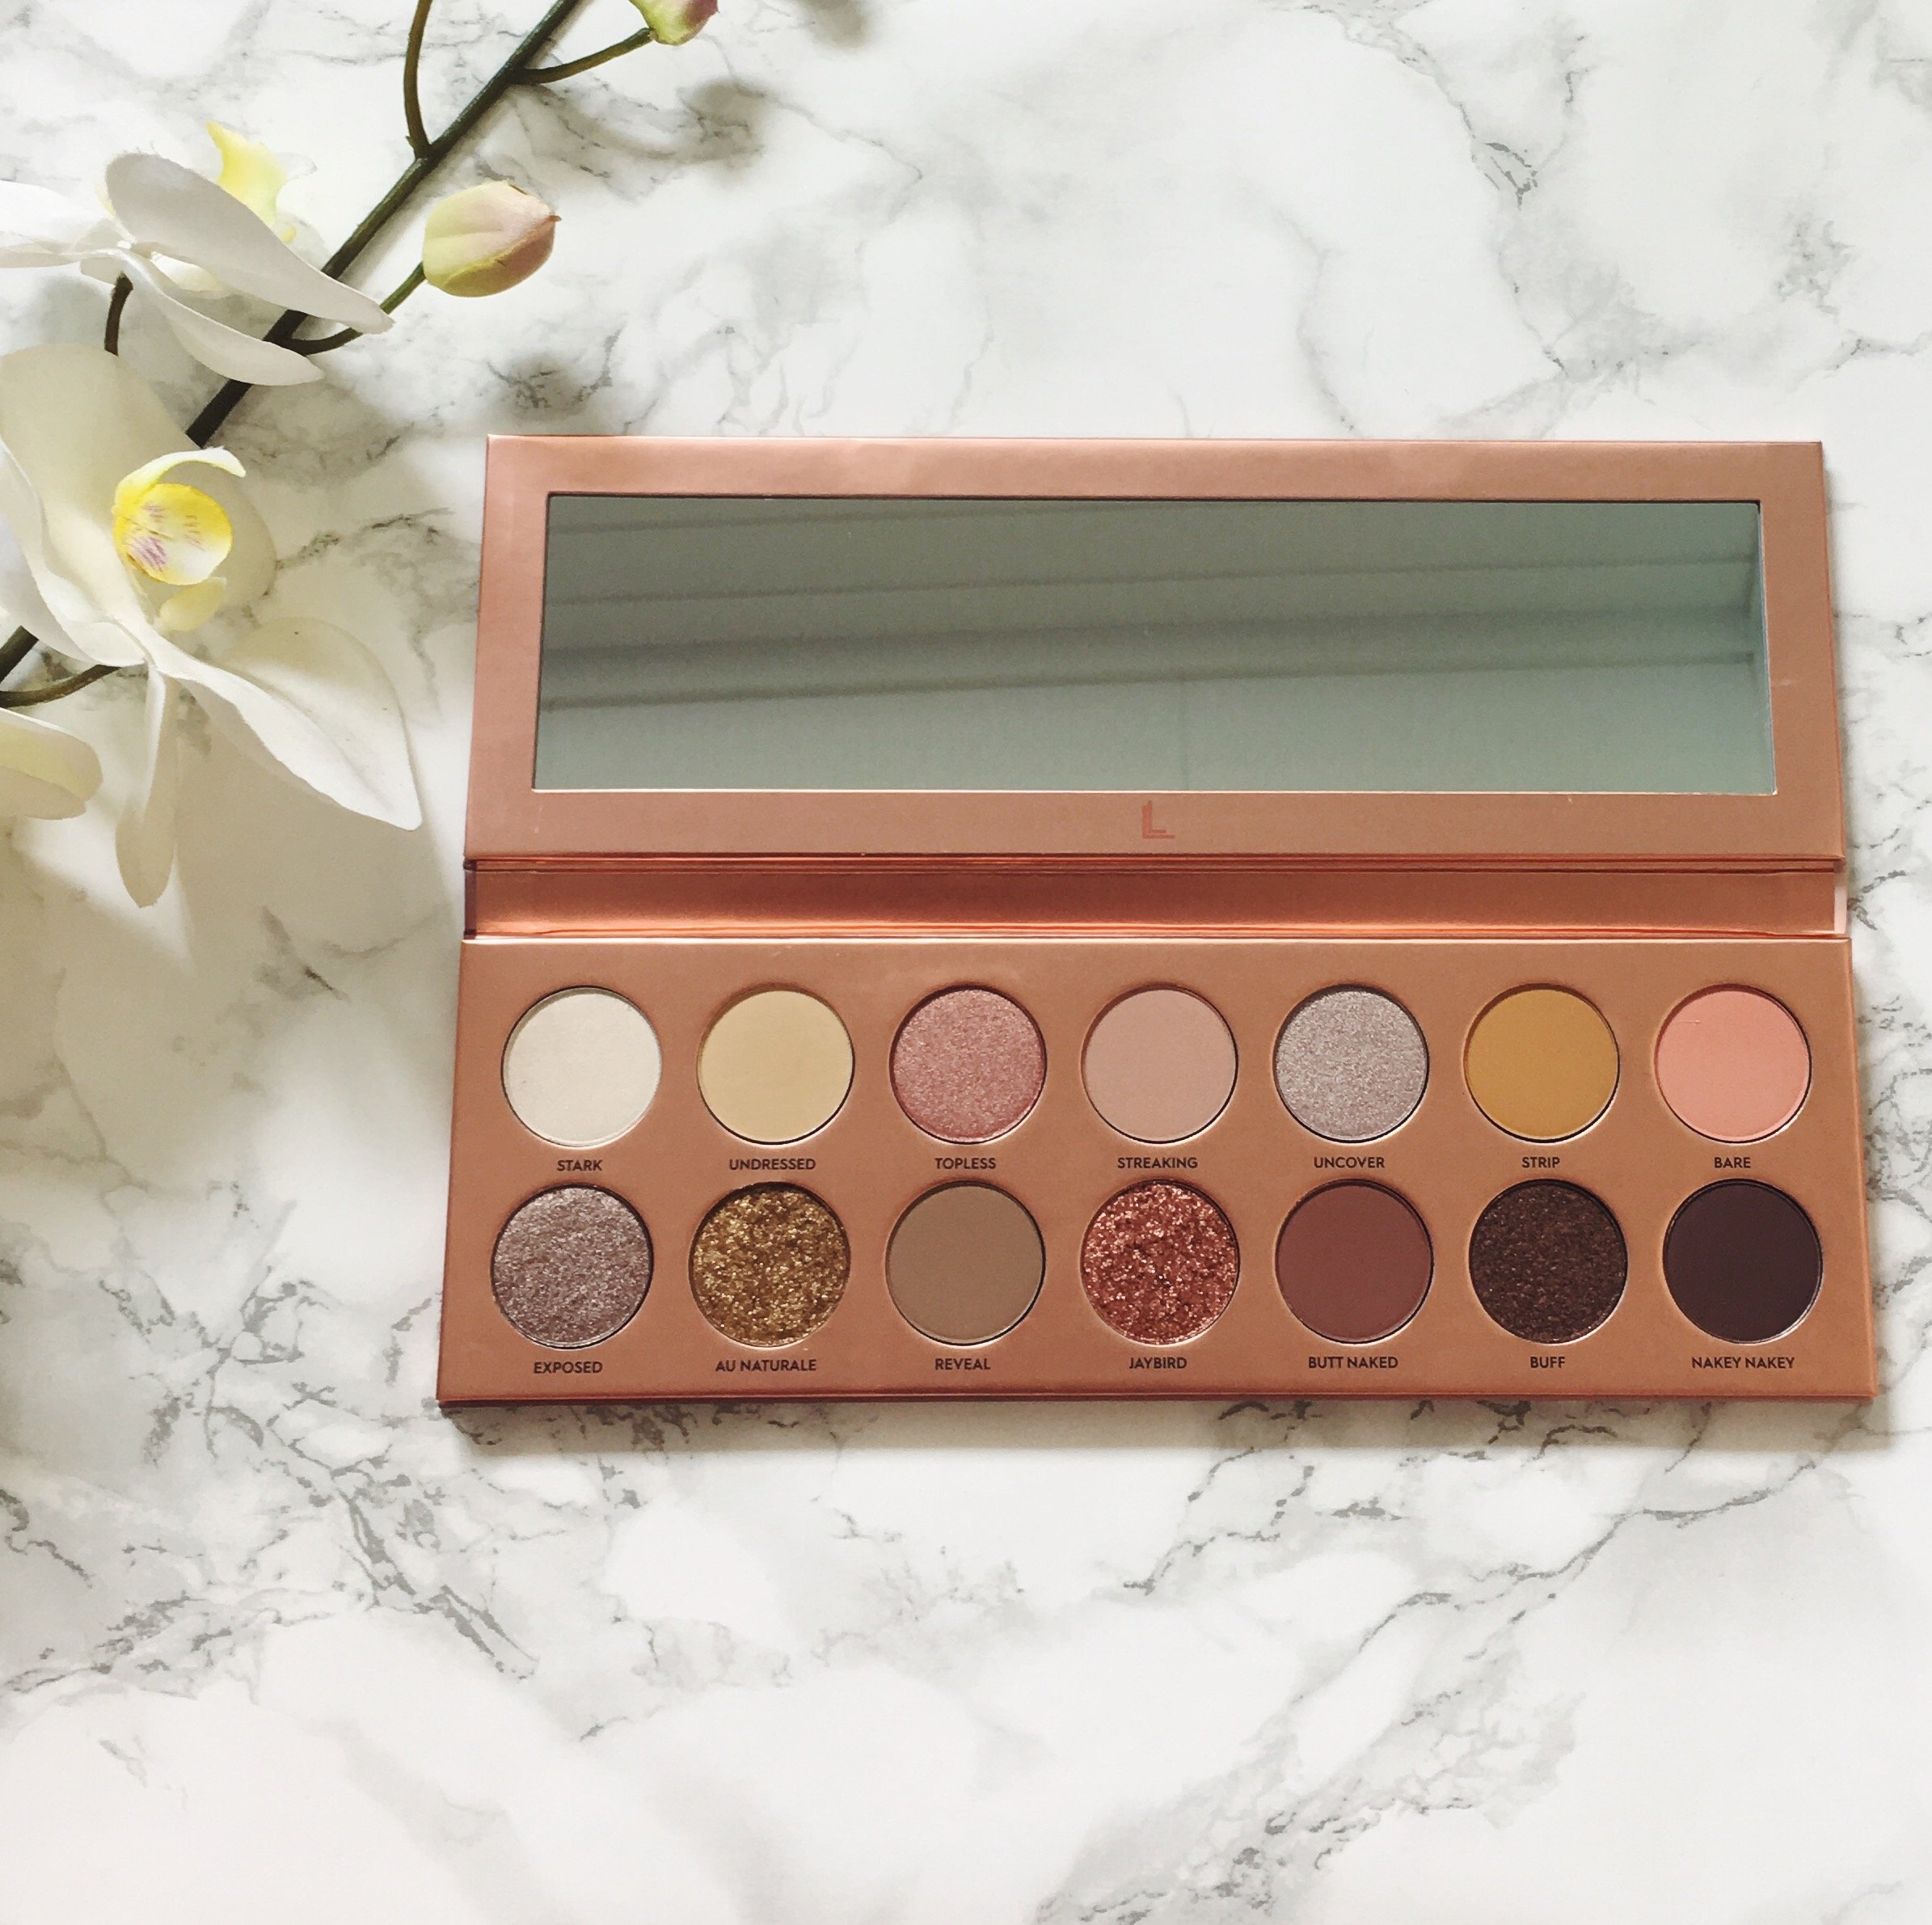 Laura Lee Los Angeles Nudie Patootie Palette | Review ⋆ Beautymone